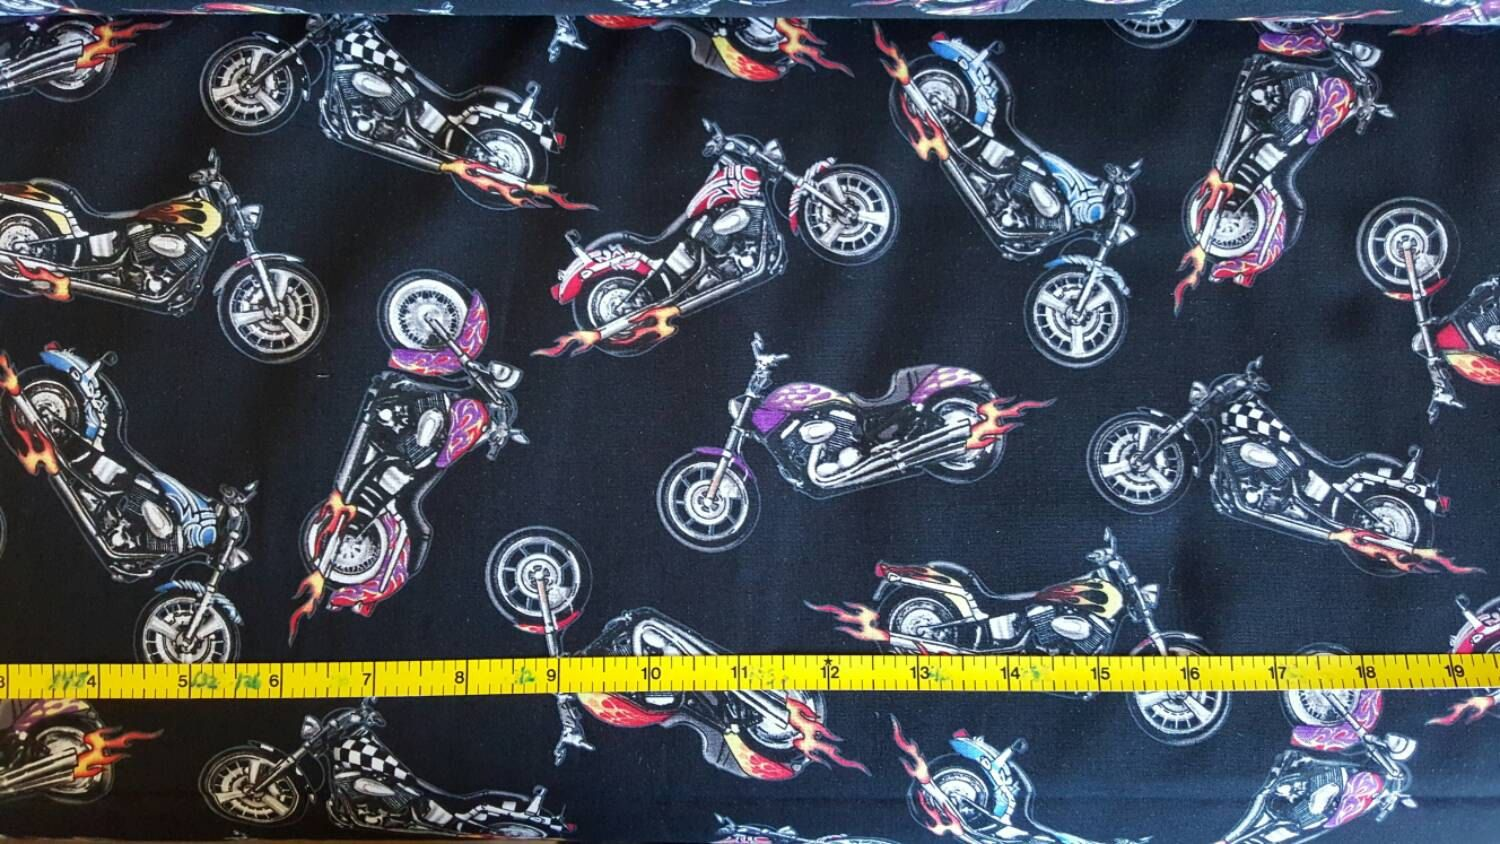 100 Cotton Quilting Fabric By The 1 2 Yard Motorcycle Biker Hd Hog Rich Black Background And Bikes Elizabeth Studio Cotton Quilting Fabric Purple Flame Fabric